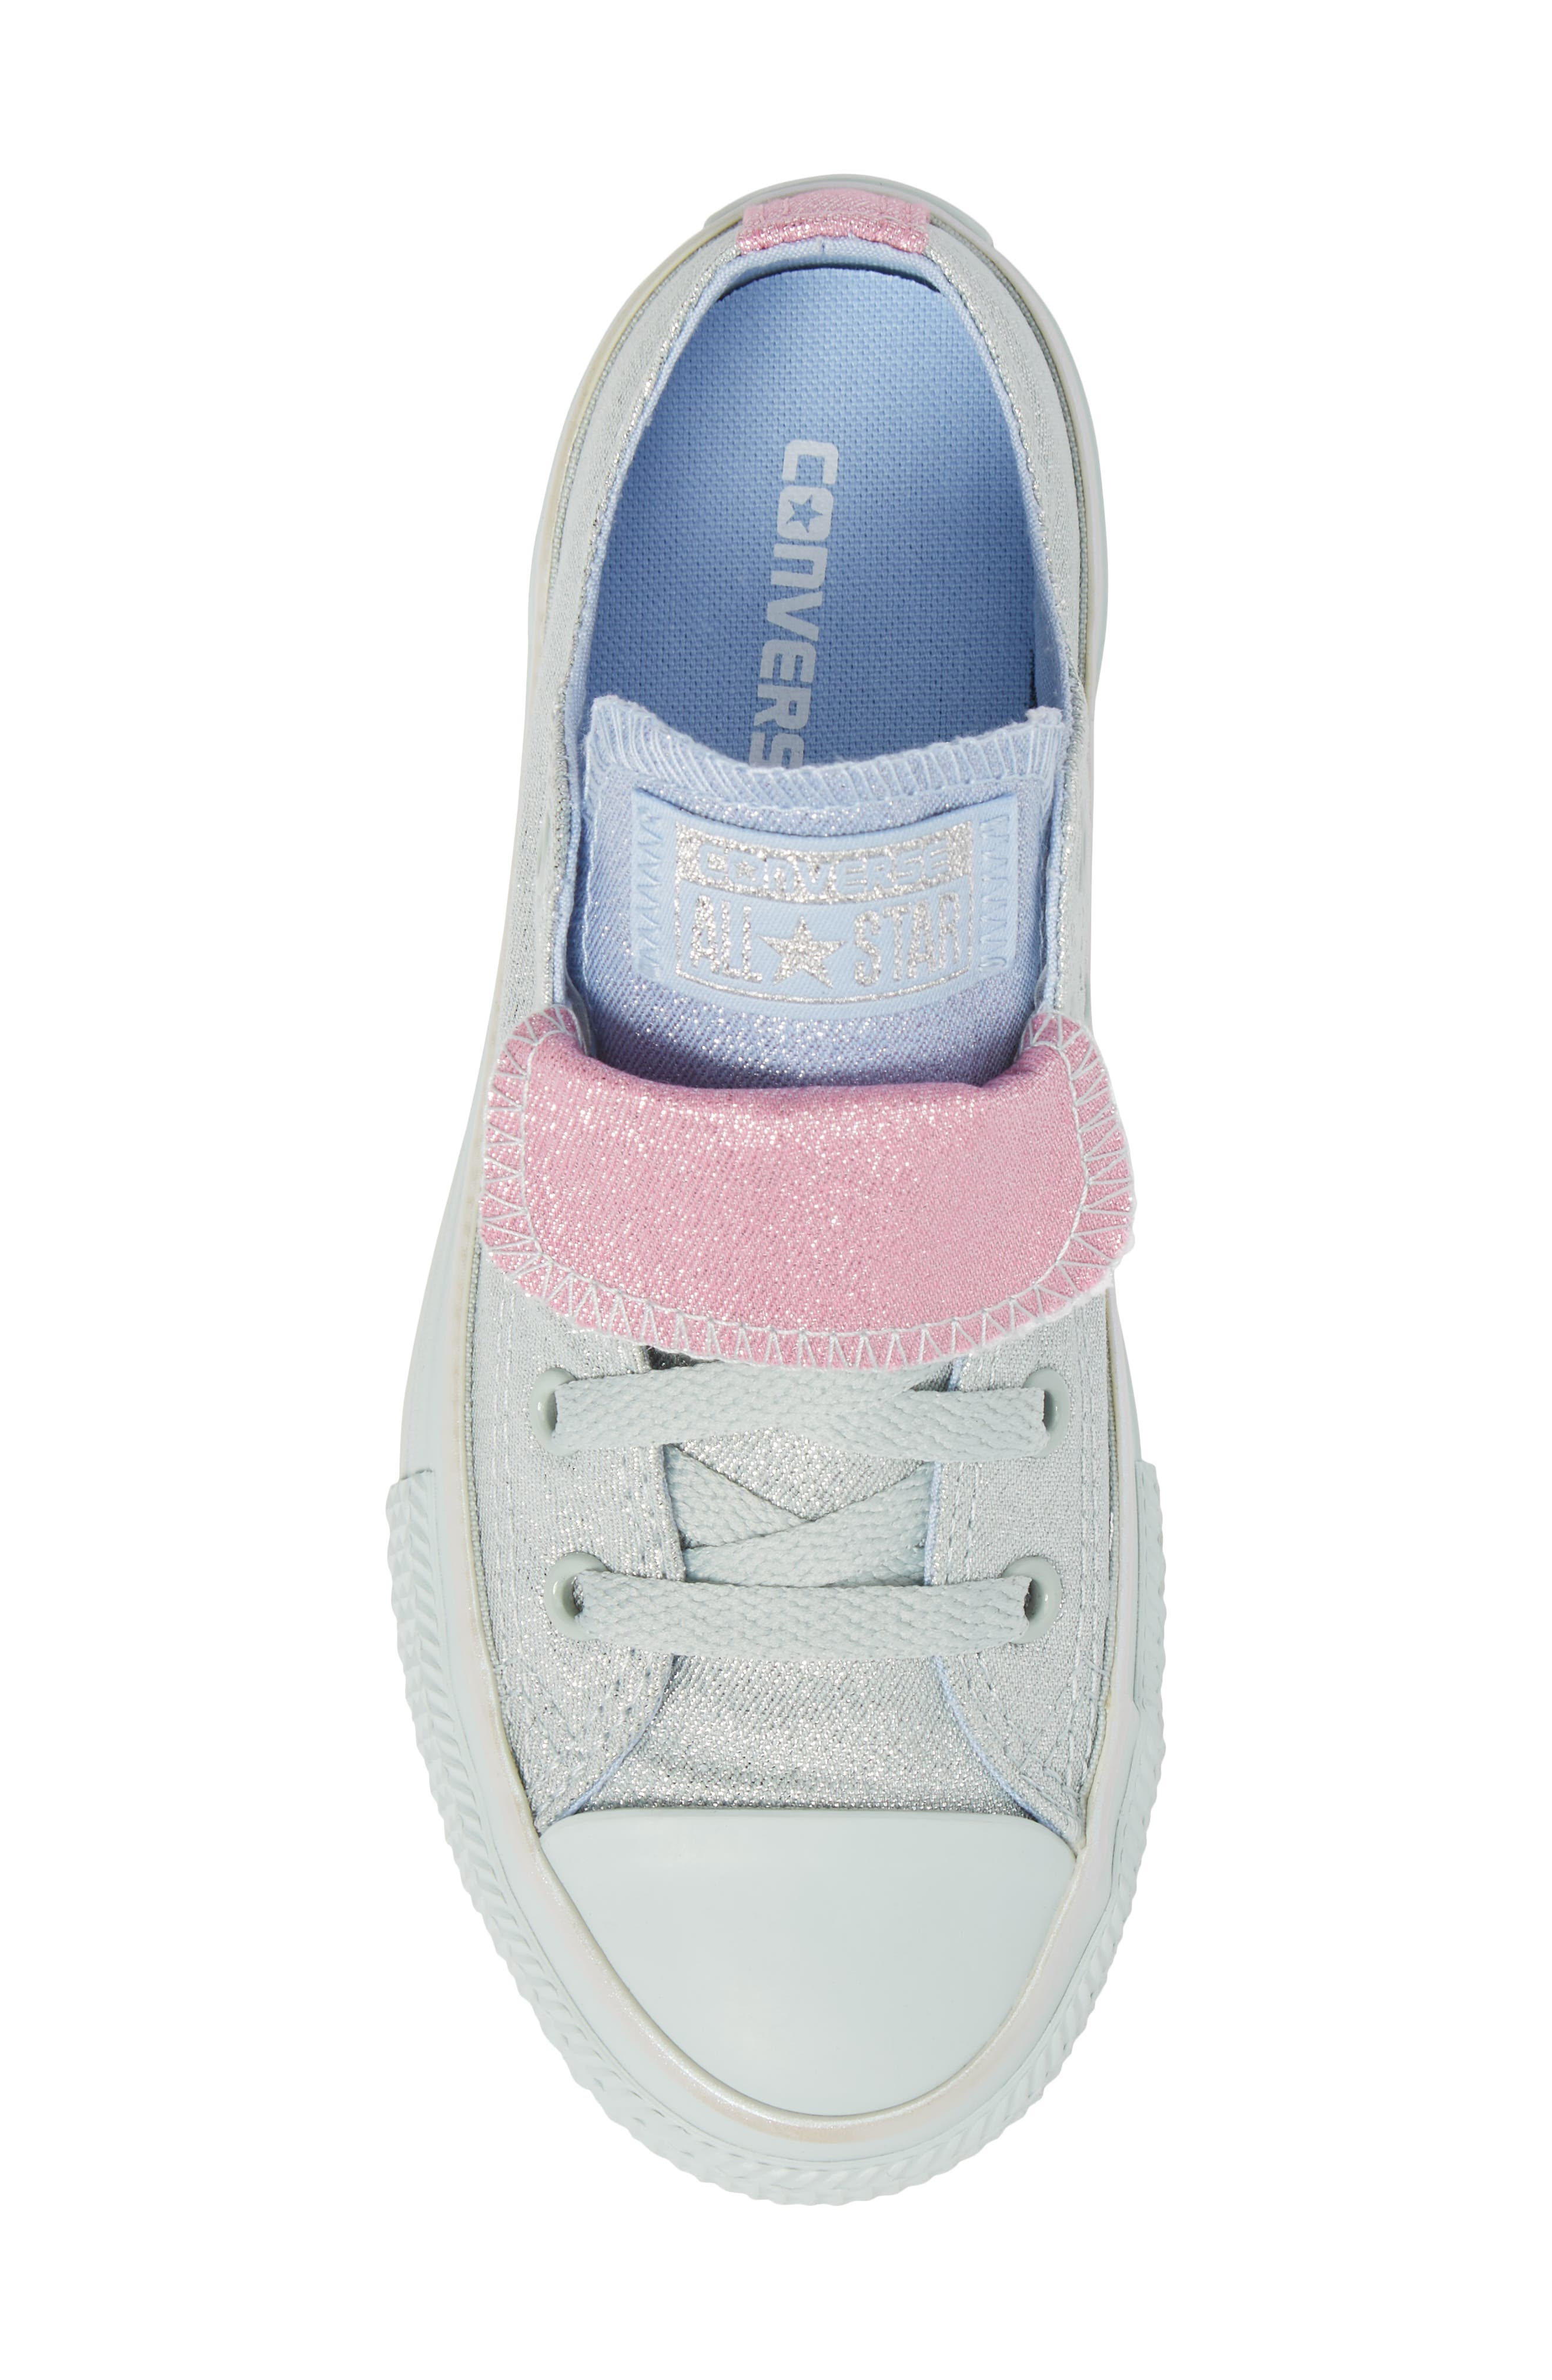 All Star<sup>®</sup> Shimmer Double Tongue Sneaker,                             Alternate thumbnail 5, color,                             301